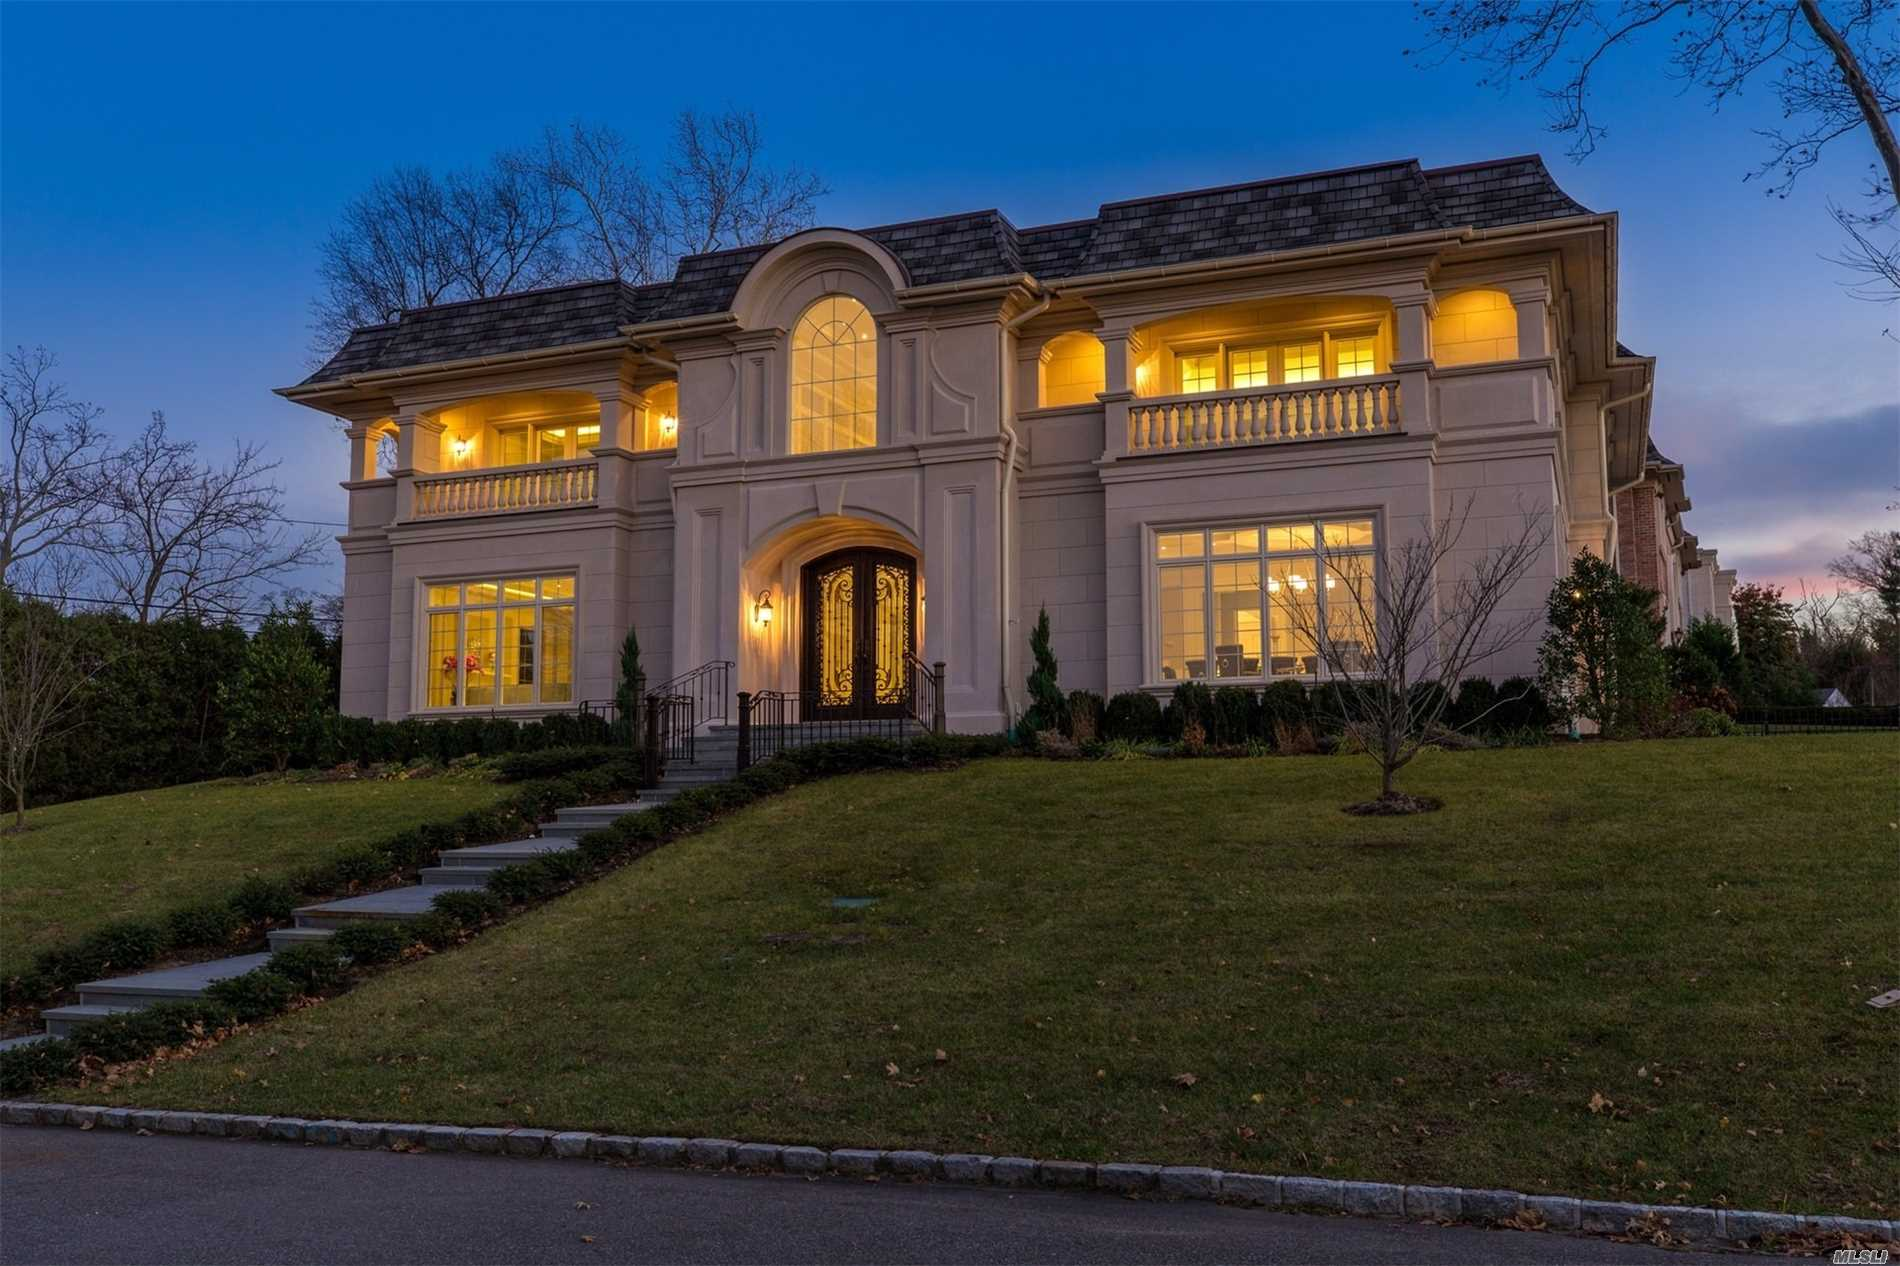 Dazzling New Construction!Epitome Of Luxury & Design!Sun-Lit Home W/Large Bedrooms, Designer Baths, Large Entertaining Rooms, Chef's Kitchen, Soaring Coffered Ceilings W/ Cove Lighting, Elevator, Finished Basement.Beautiful Water Views From Master Bedroom Balcony, Spa-Like Master Bath.Part Of Saddle Rock's Waterfront Pool Club With Tennis Courts, Playground, Basketball & Marina.